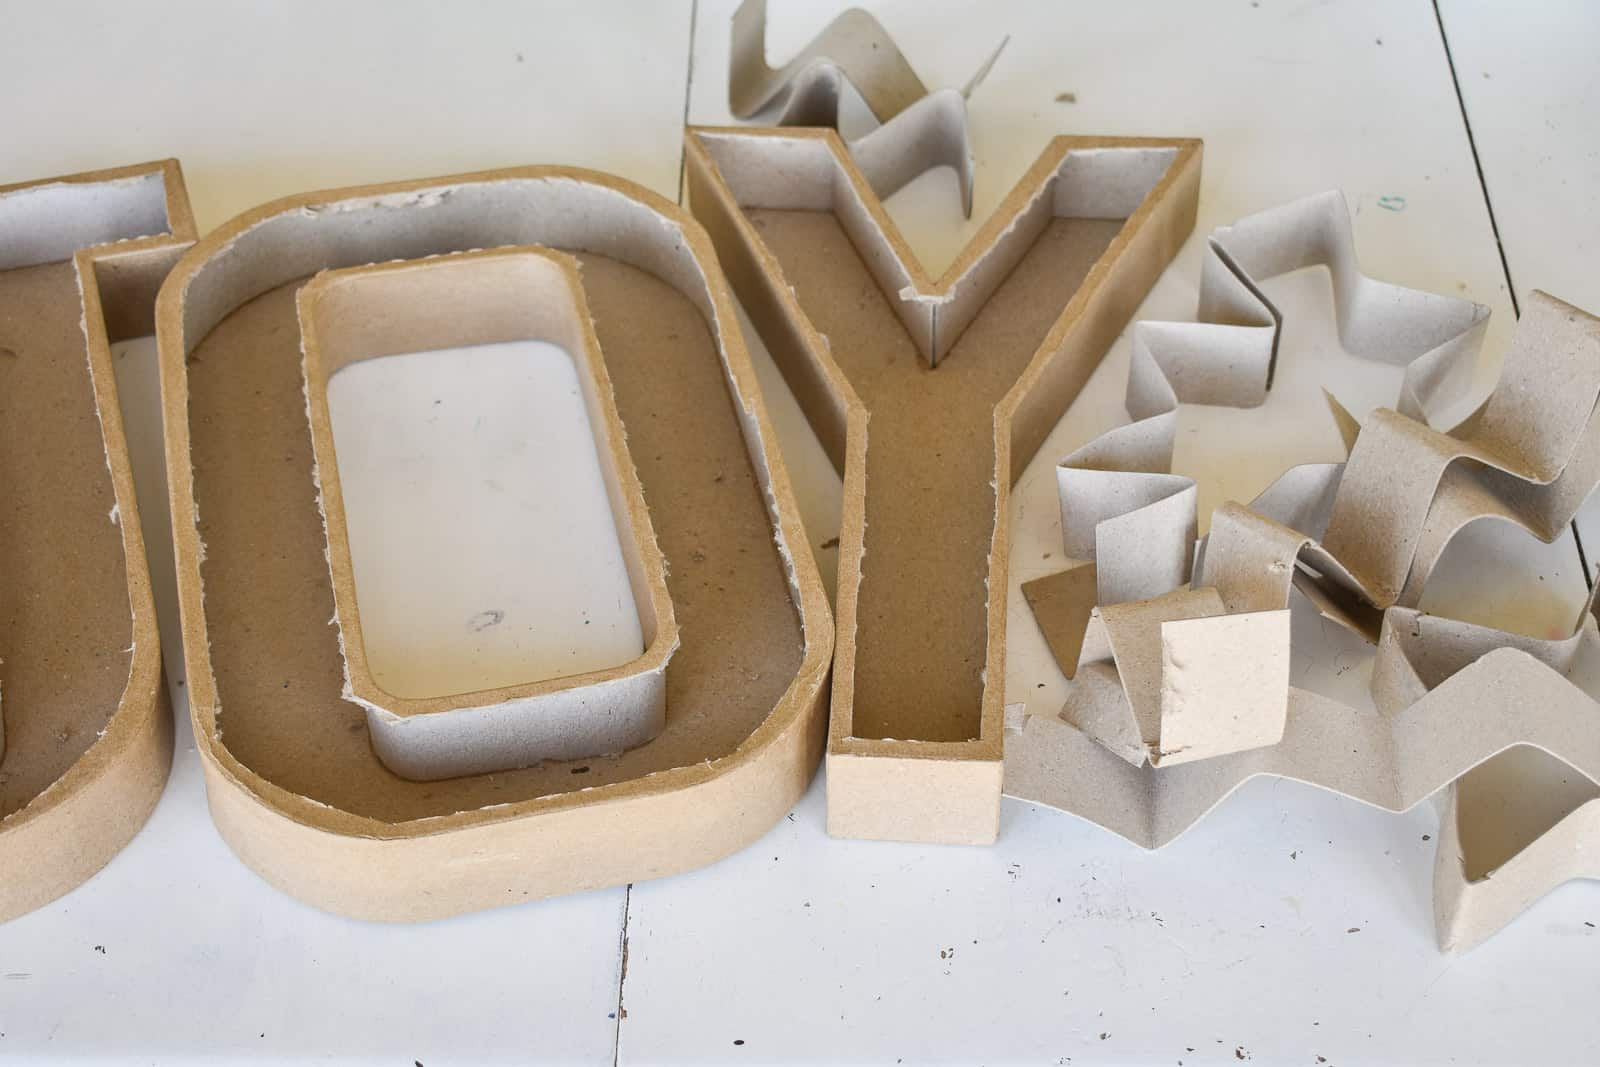 cut open the paper mache letters